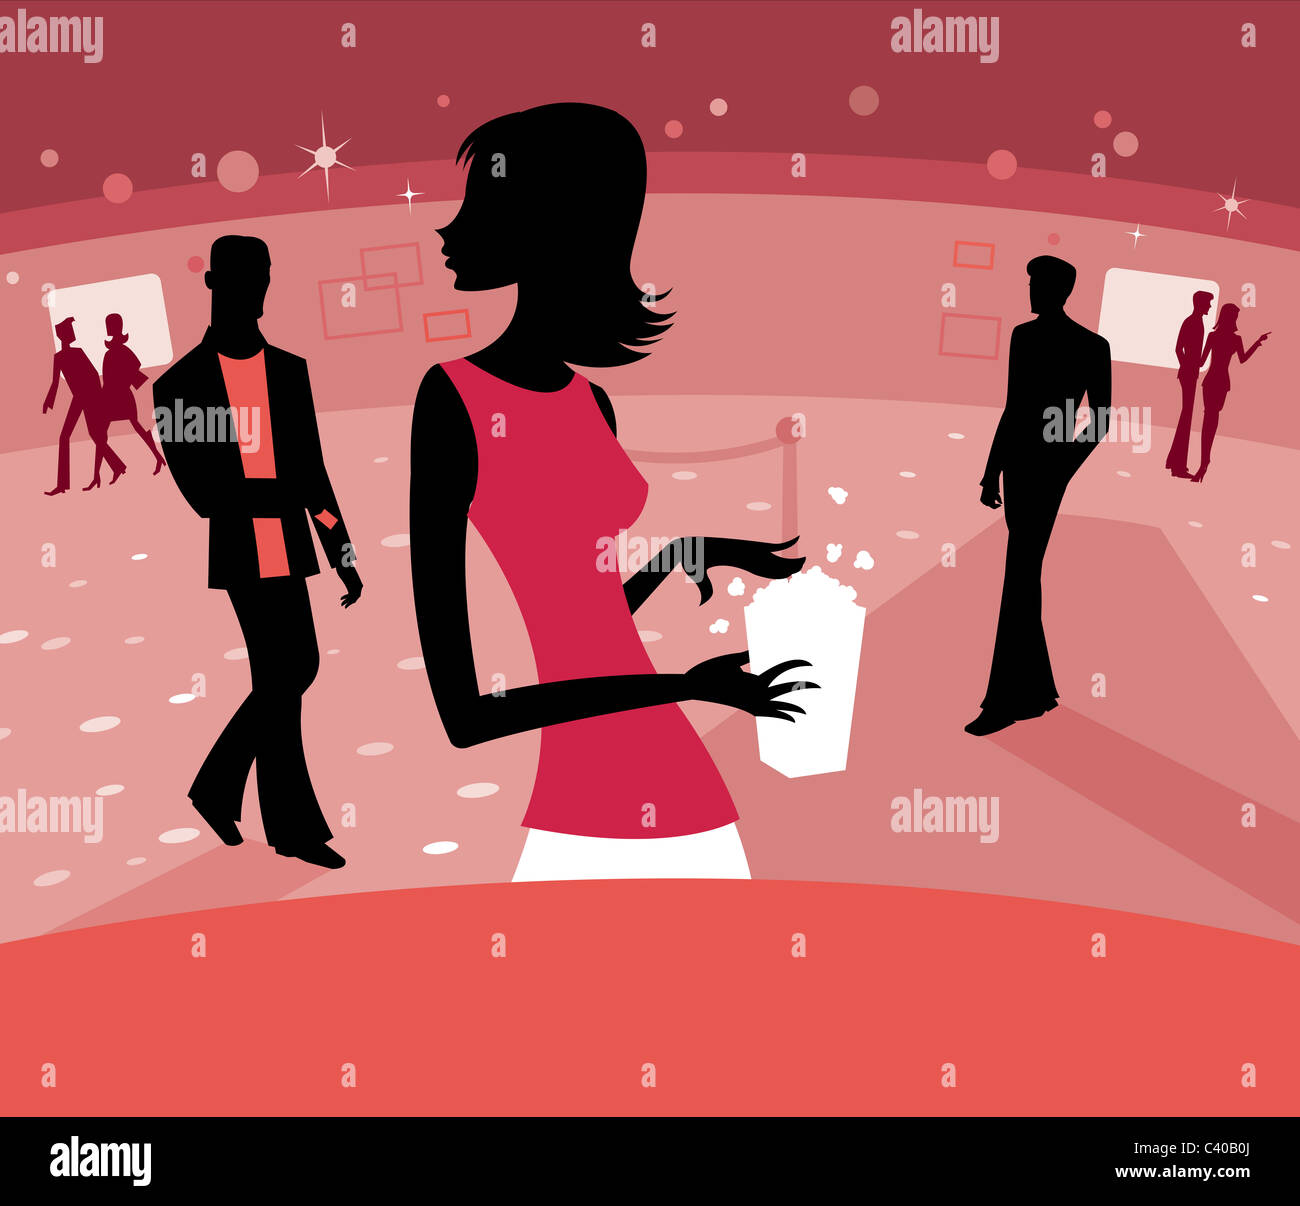 Illustration of a woman getting popcorn - Stock Image